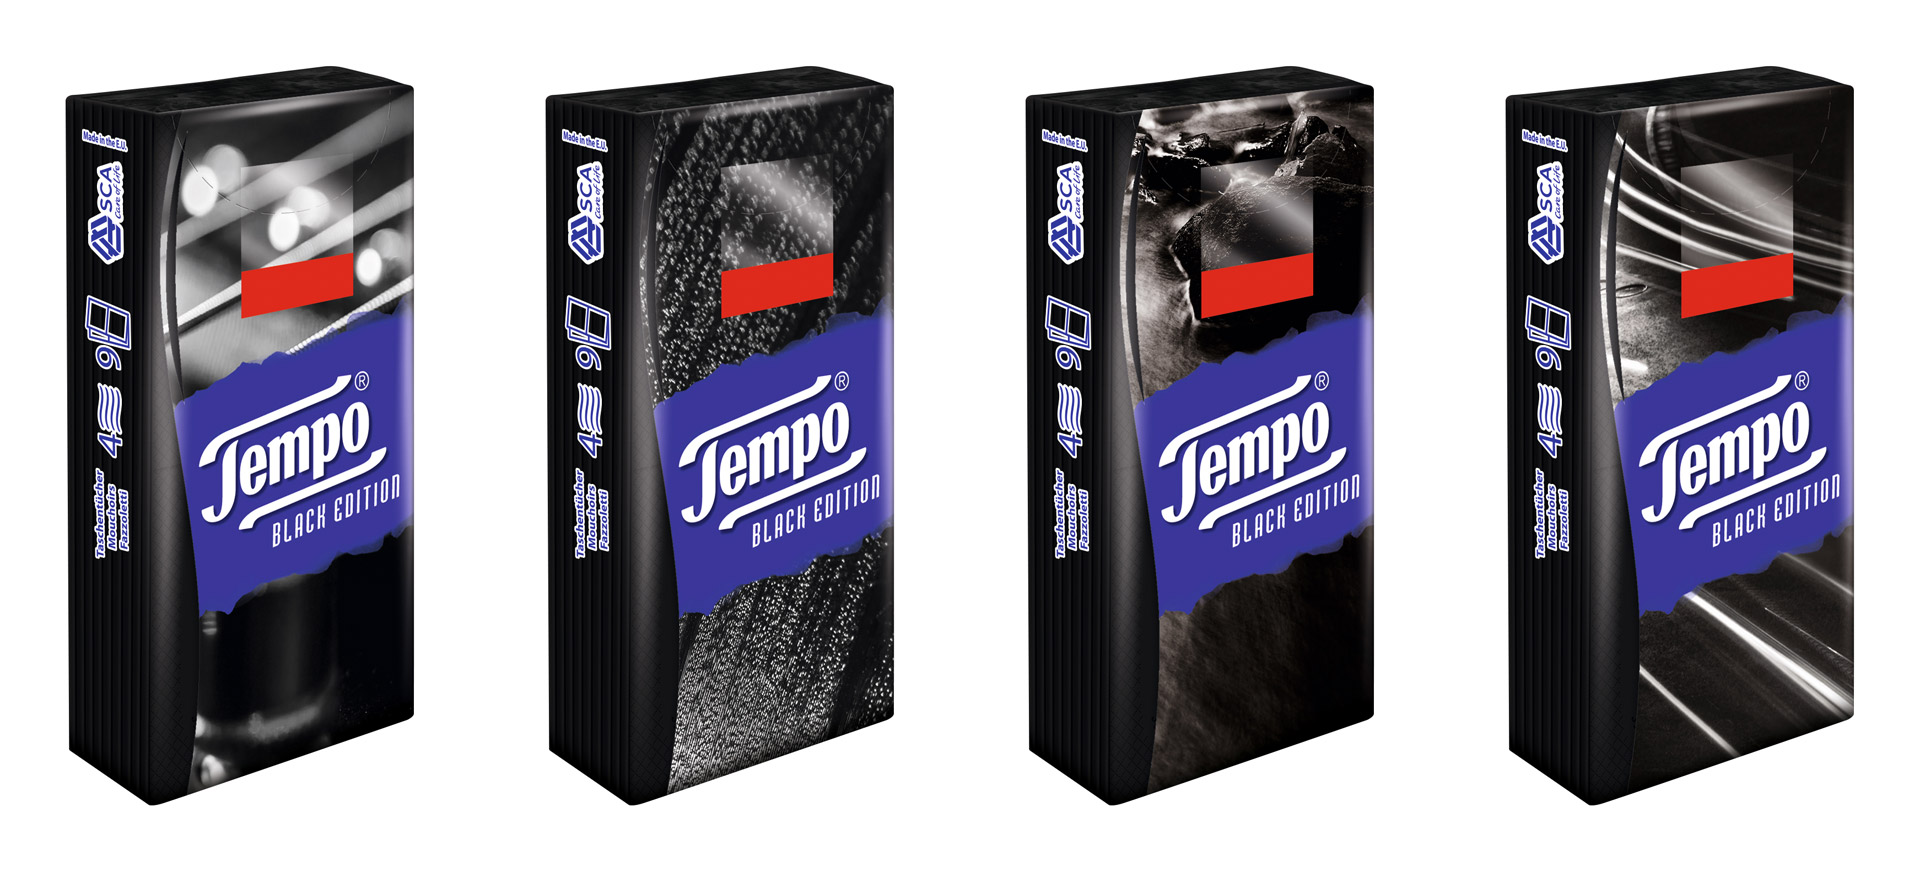 Tempo Black Edition in verschiedenen Designs